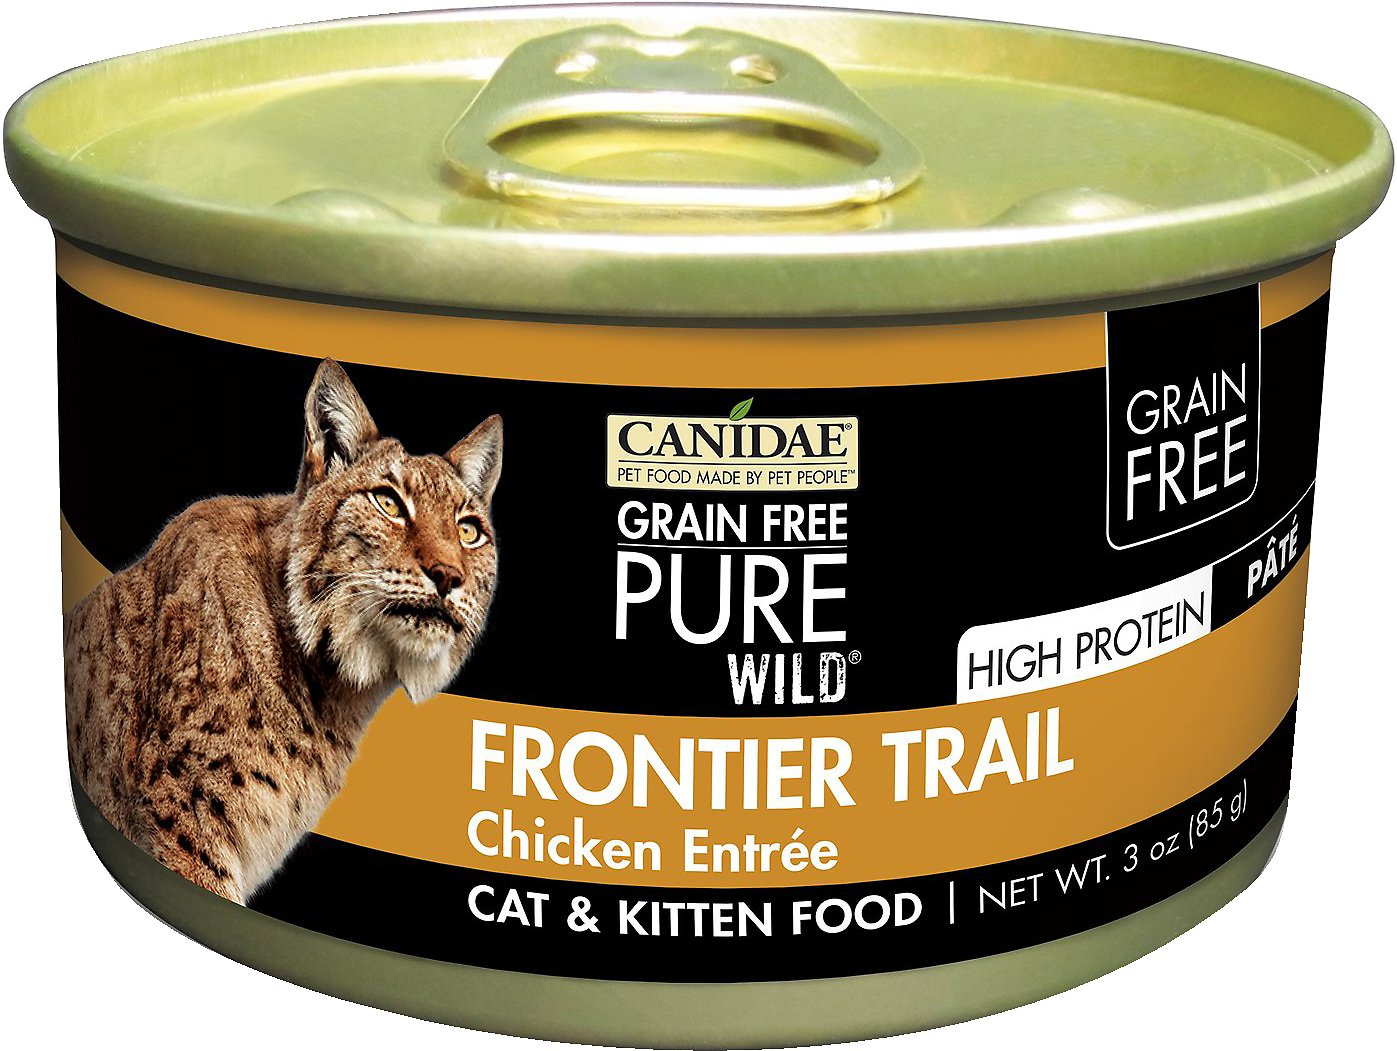 Canidae Grain Free Pure Canned Cat Food